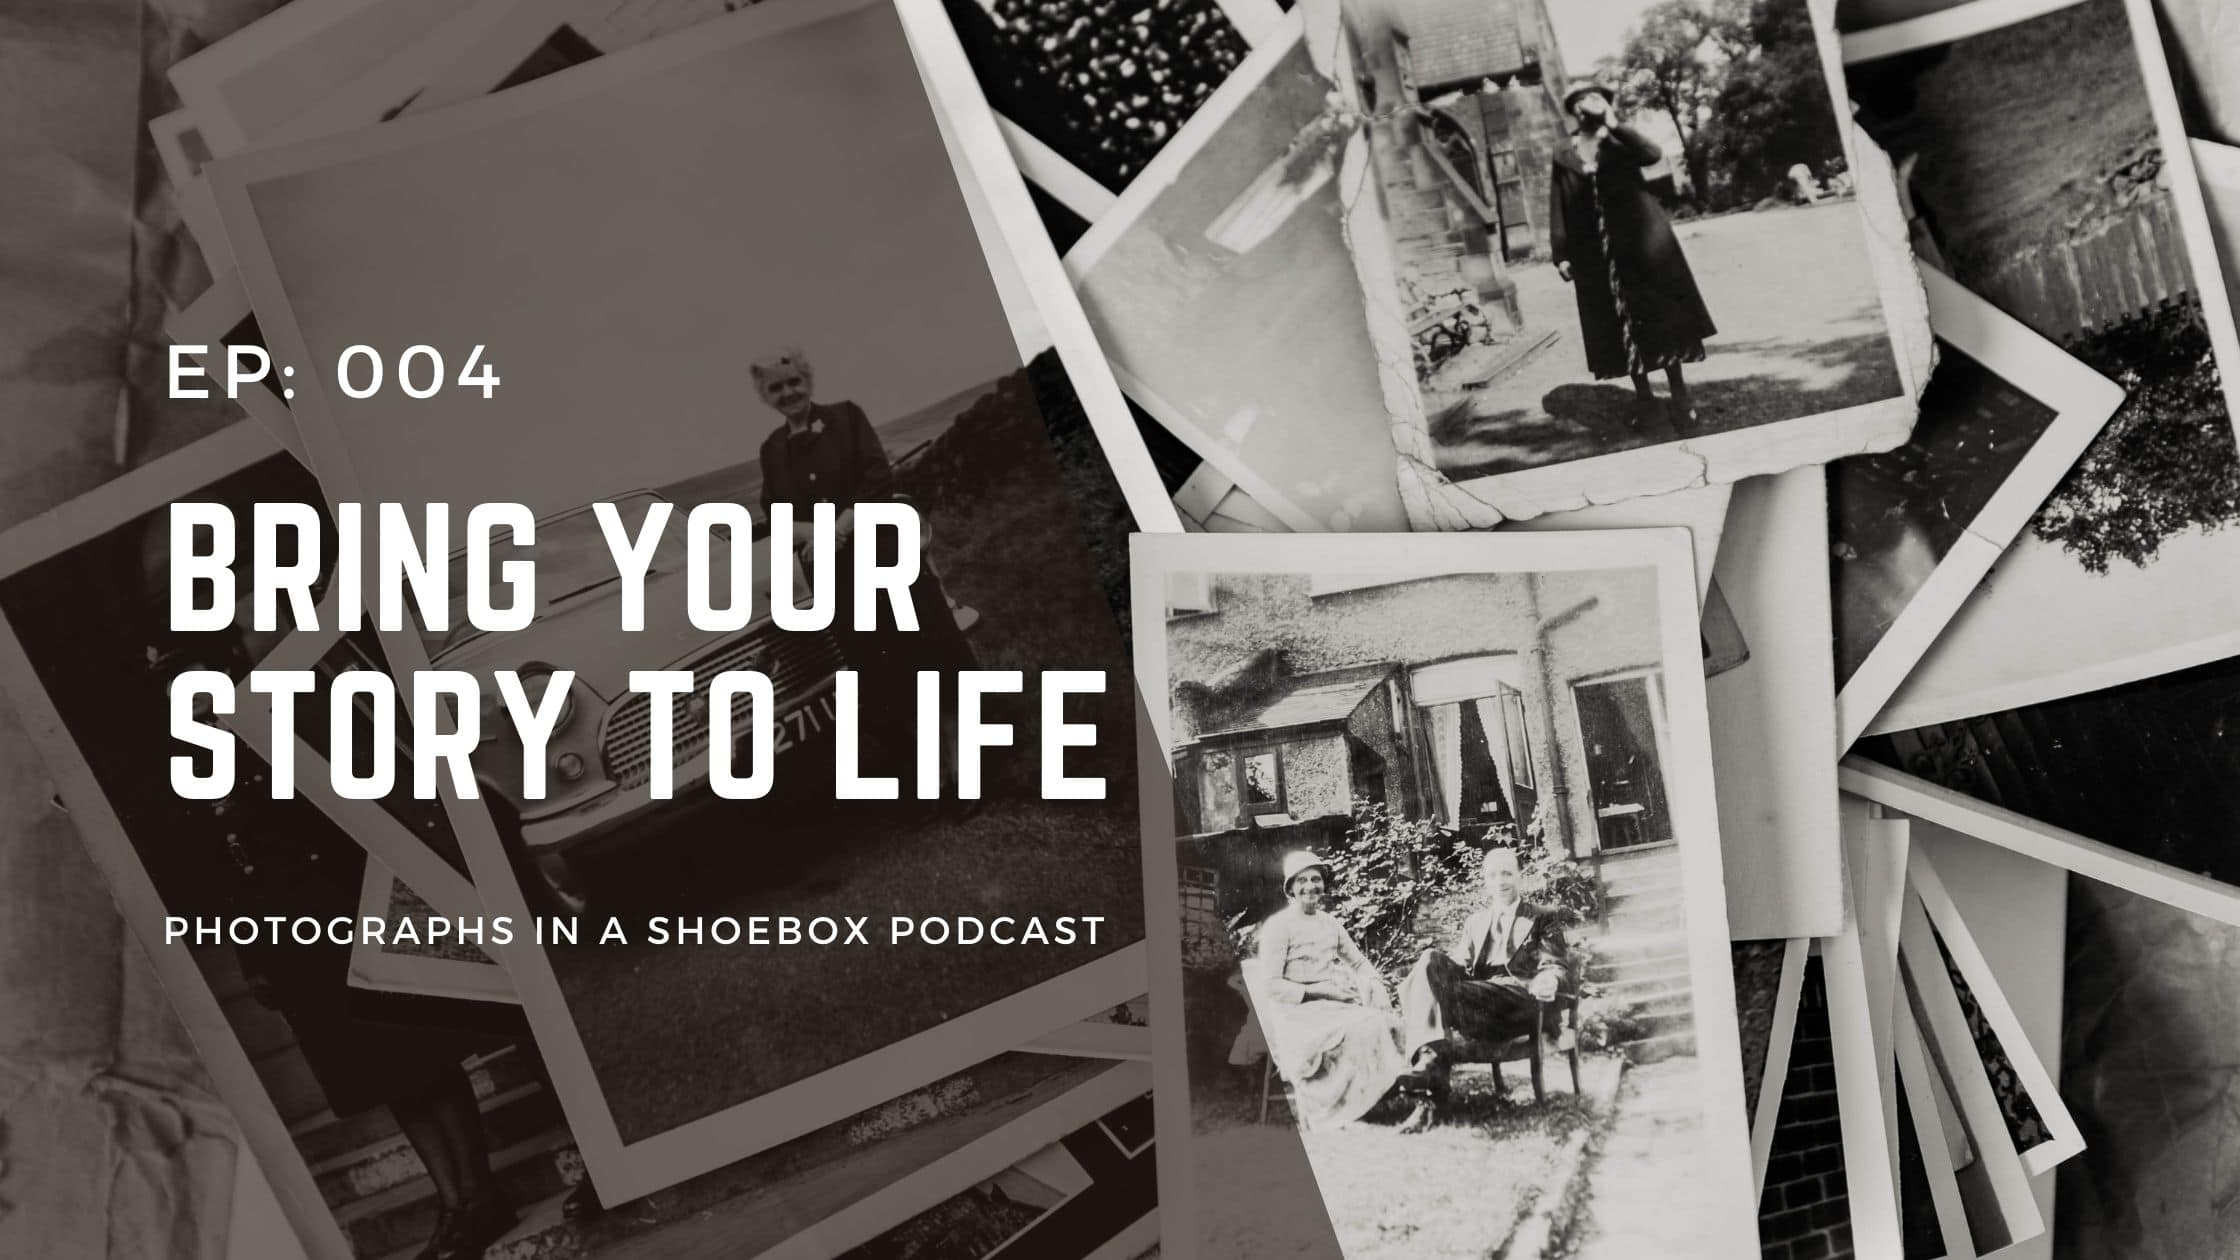 artwork for photographs in a shoebox podcast episode 4